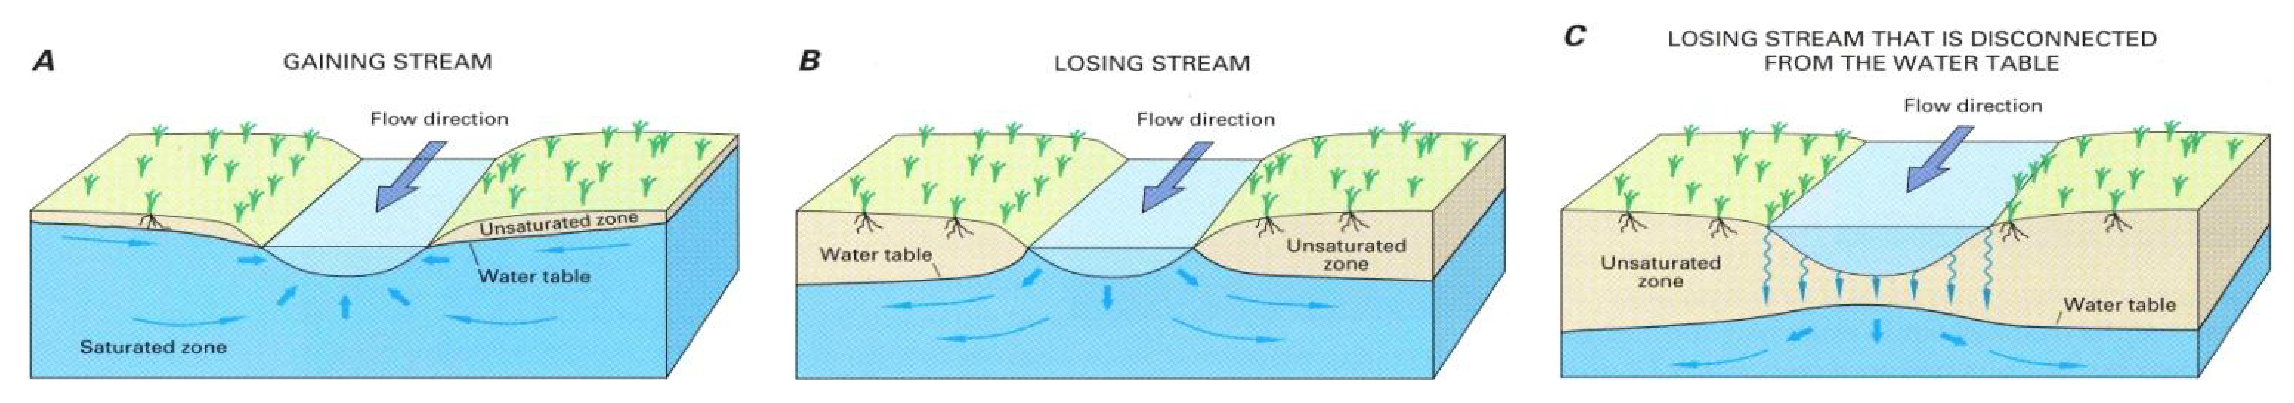 Streams can gain, lose or be disconnected from groundwater